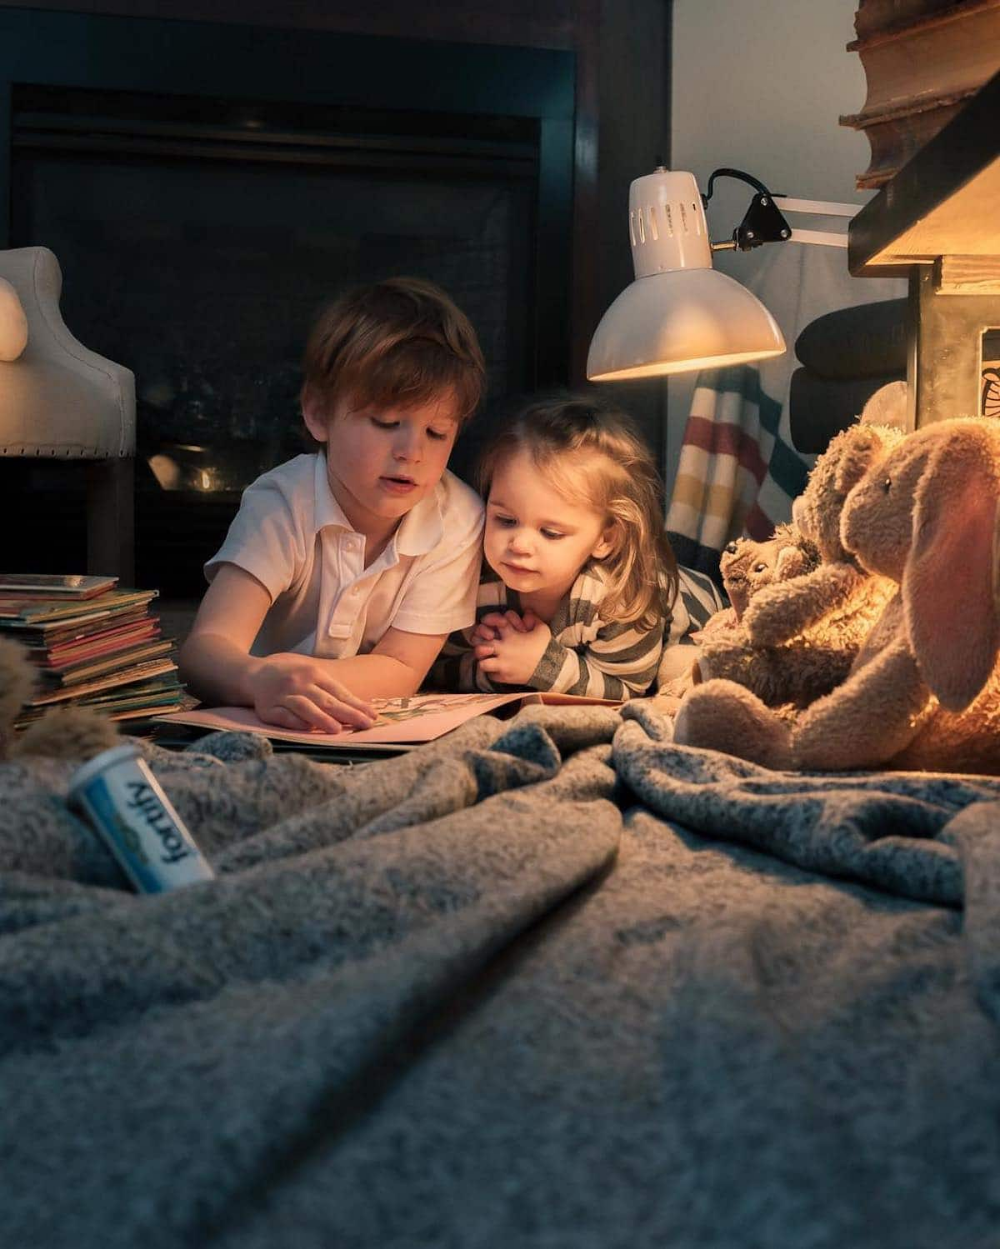 This Loving Father Captures the Magic of Everyday